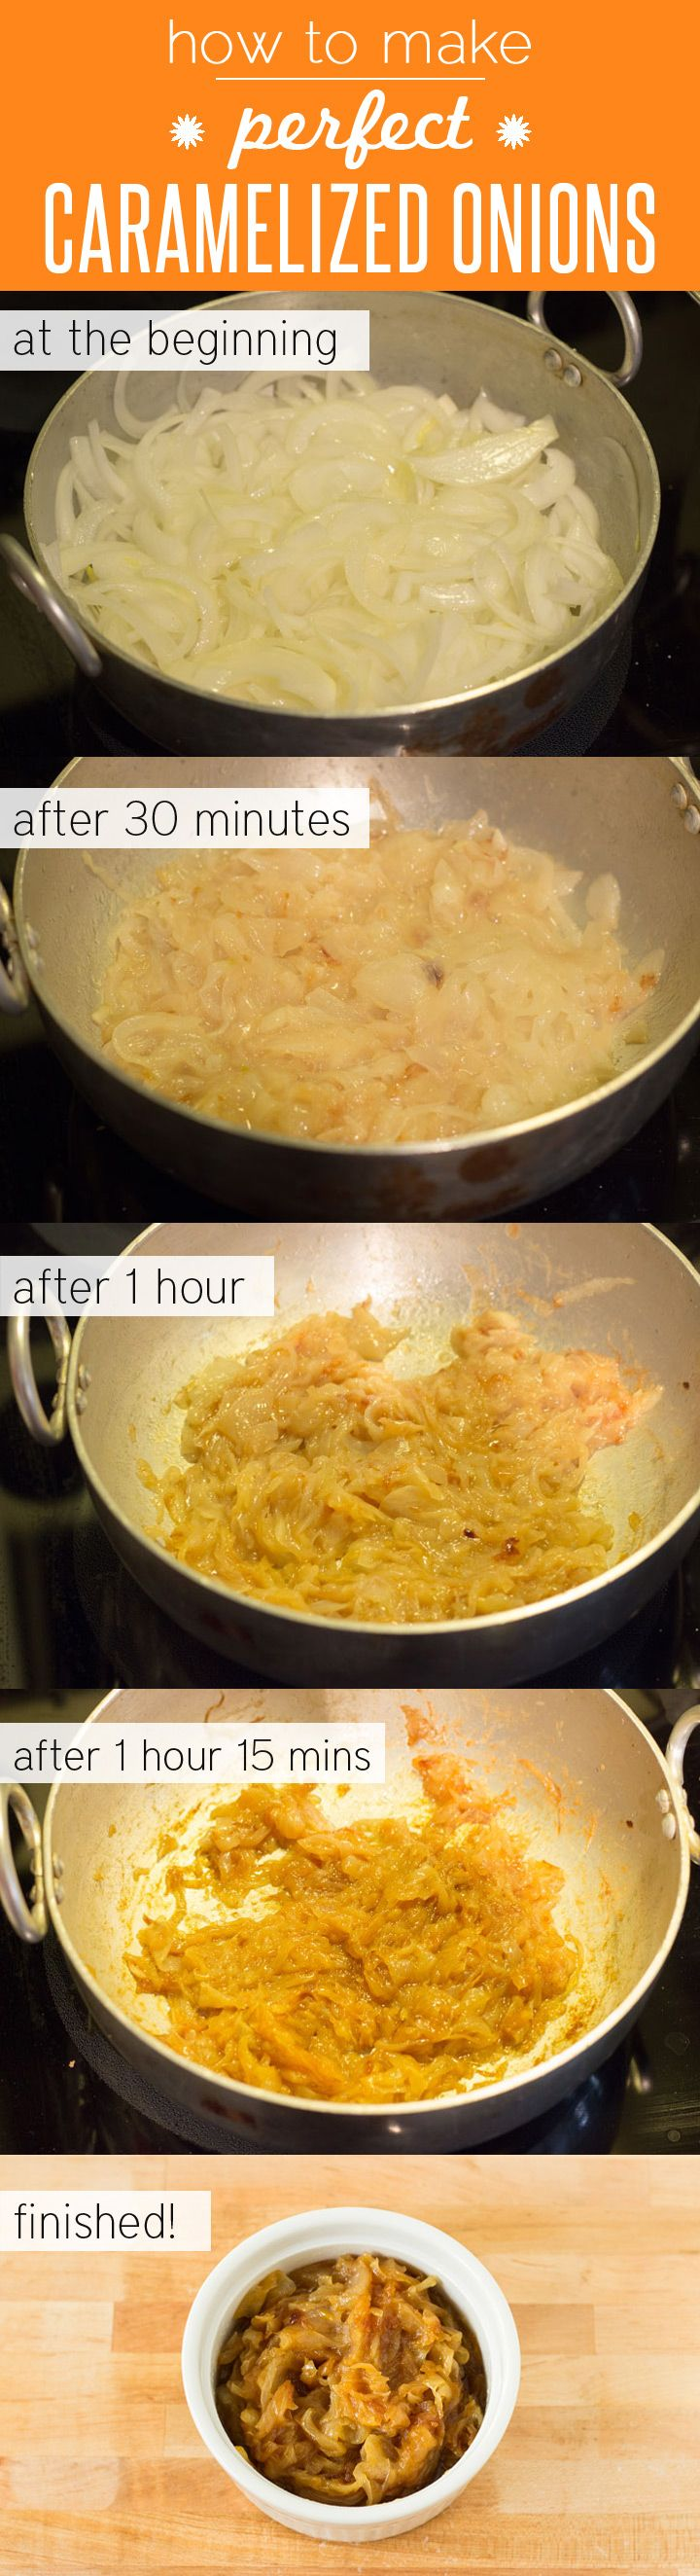 How to Make Perfect Caramelized Onions with Step-by-Step Pictures